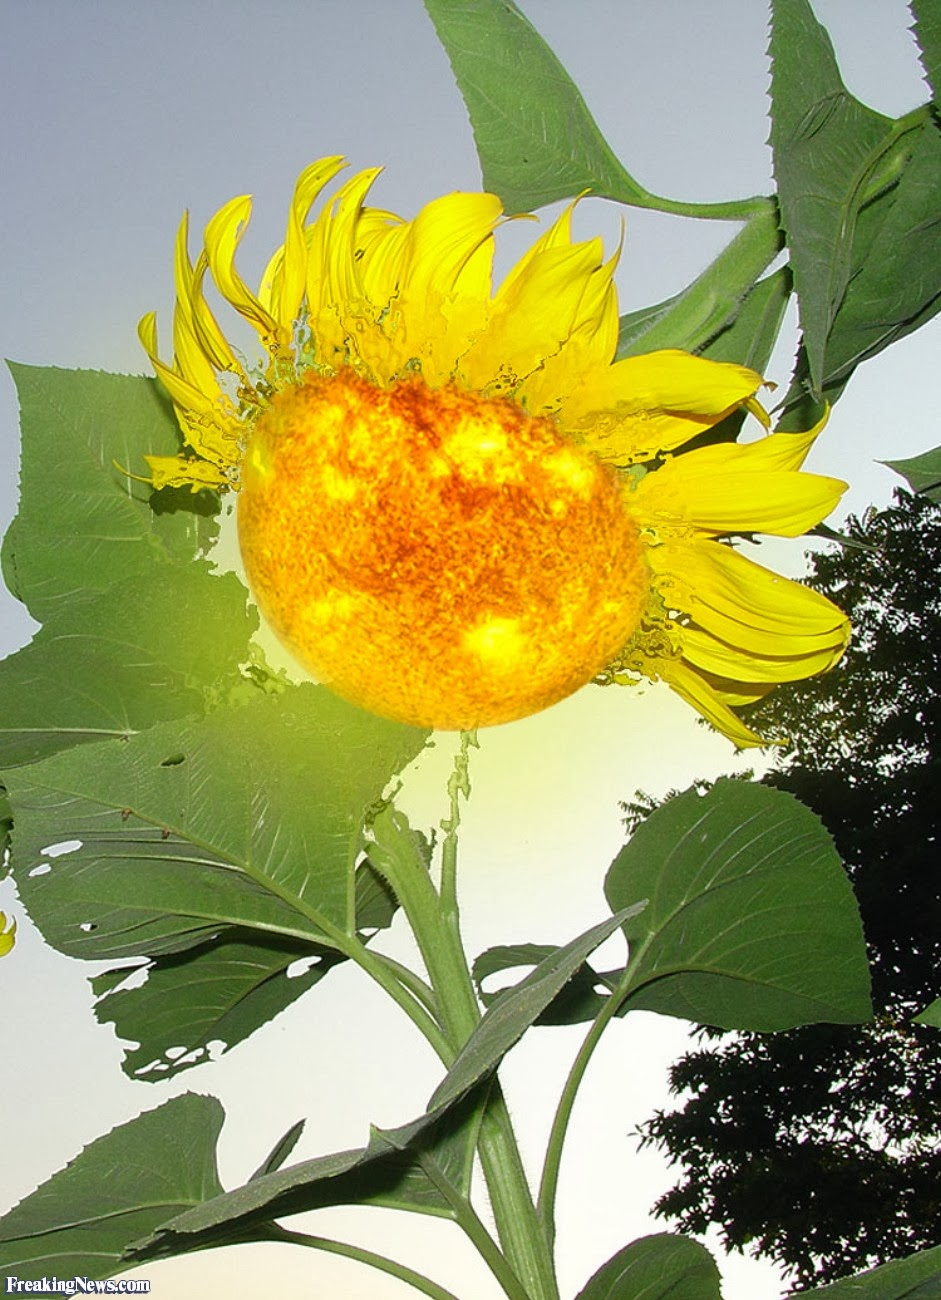 Image of sunflower manipulated to look like the sun